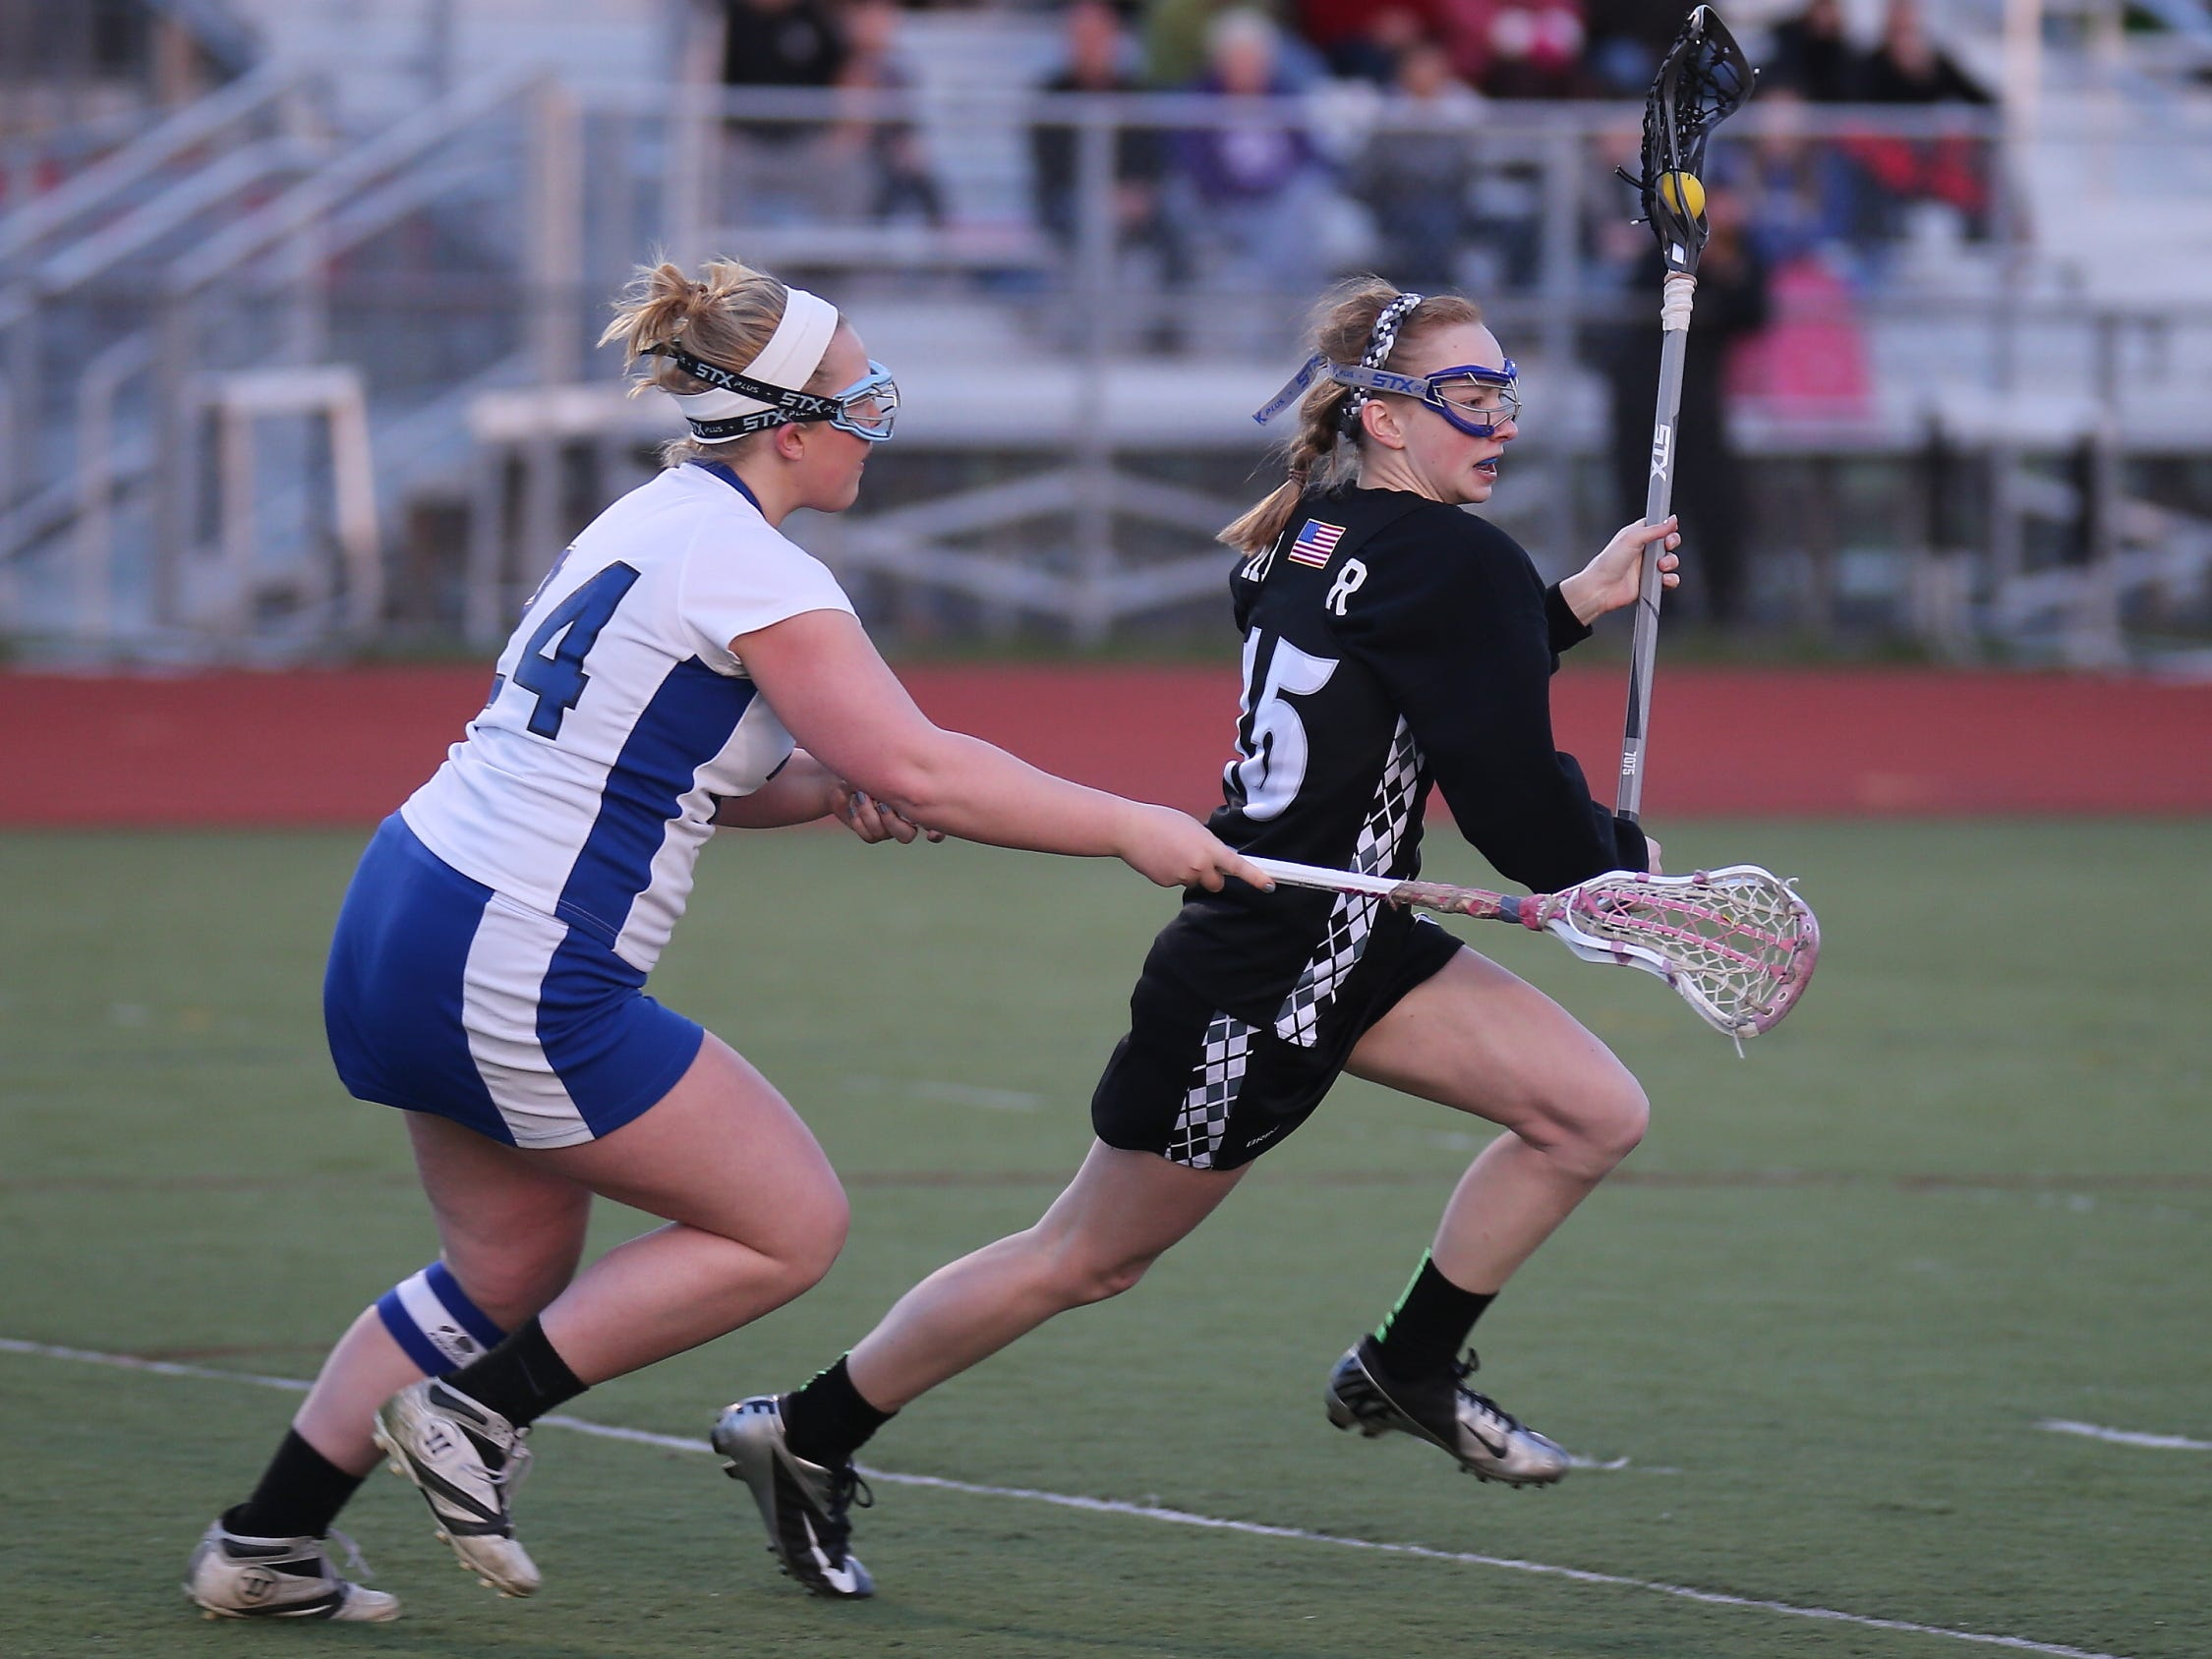 Plymouth's Cathryn VandenBosch (No. 15) tries to escape the defensive pressure of Salem's Megan Finkbeiner (No. 44) during Wednesday night's varsity girls lacrosse match.